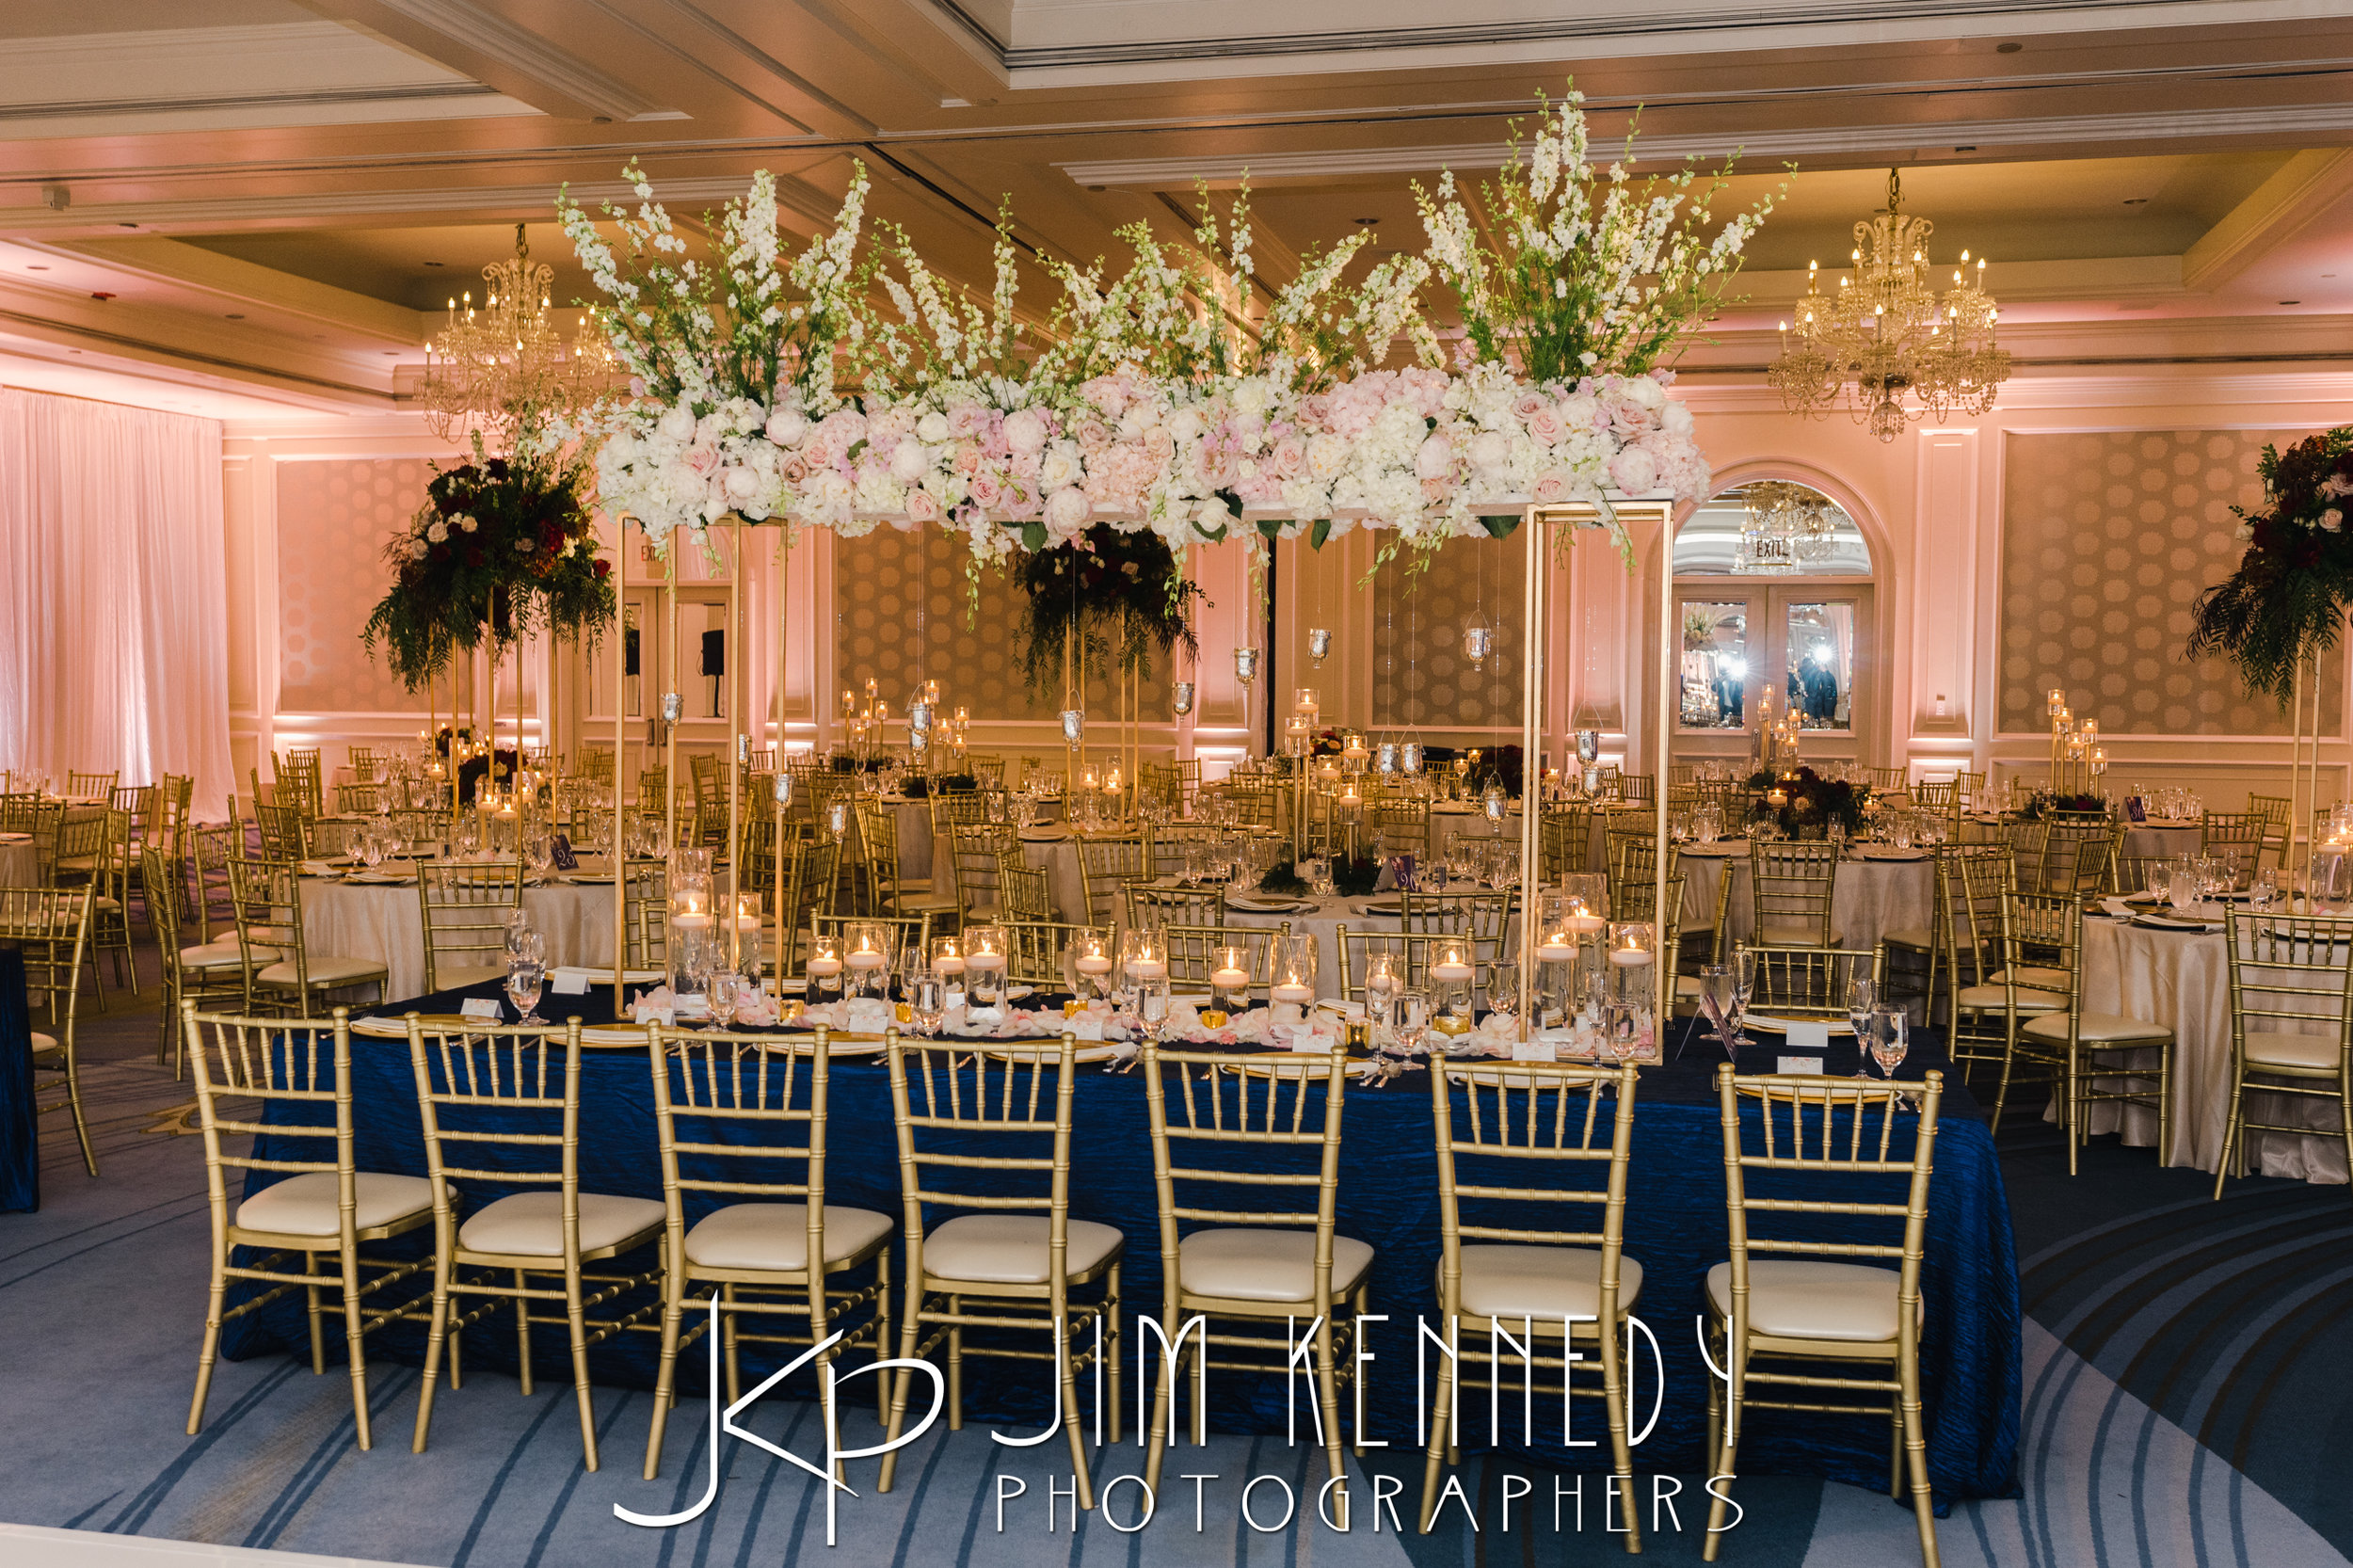 ritz-carlton-wedding-janaki-sameer_0236.JPG